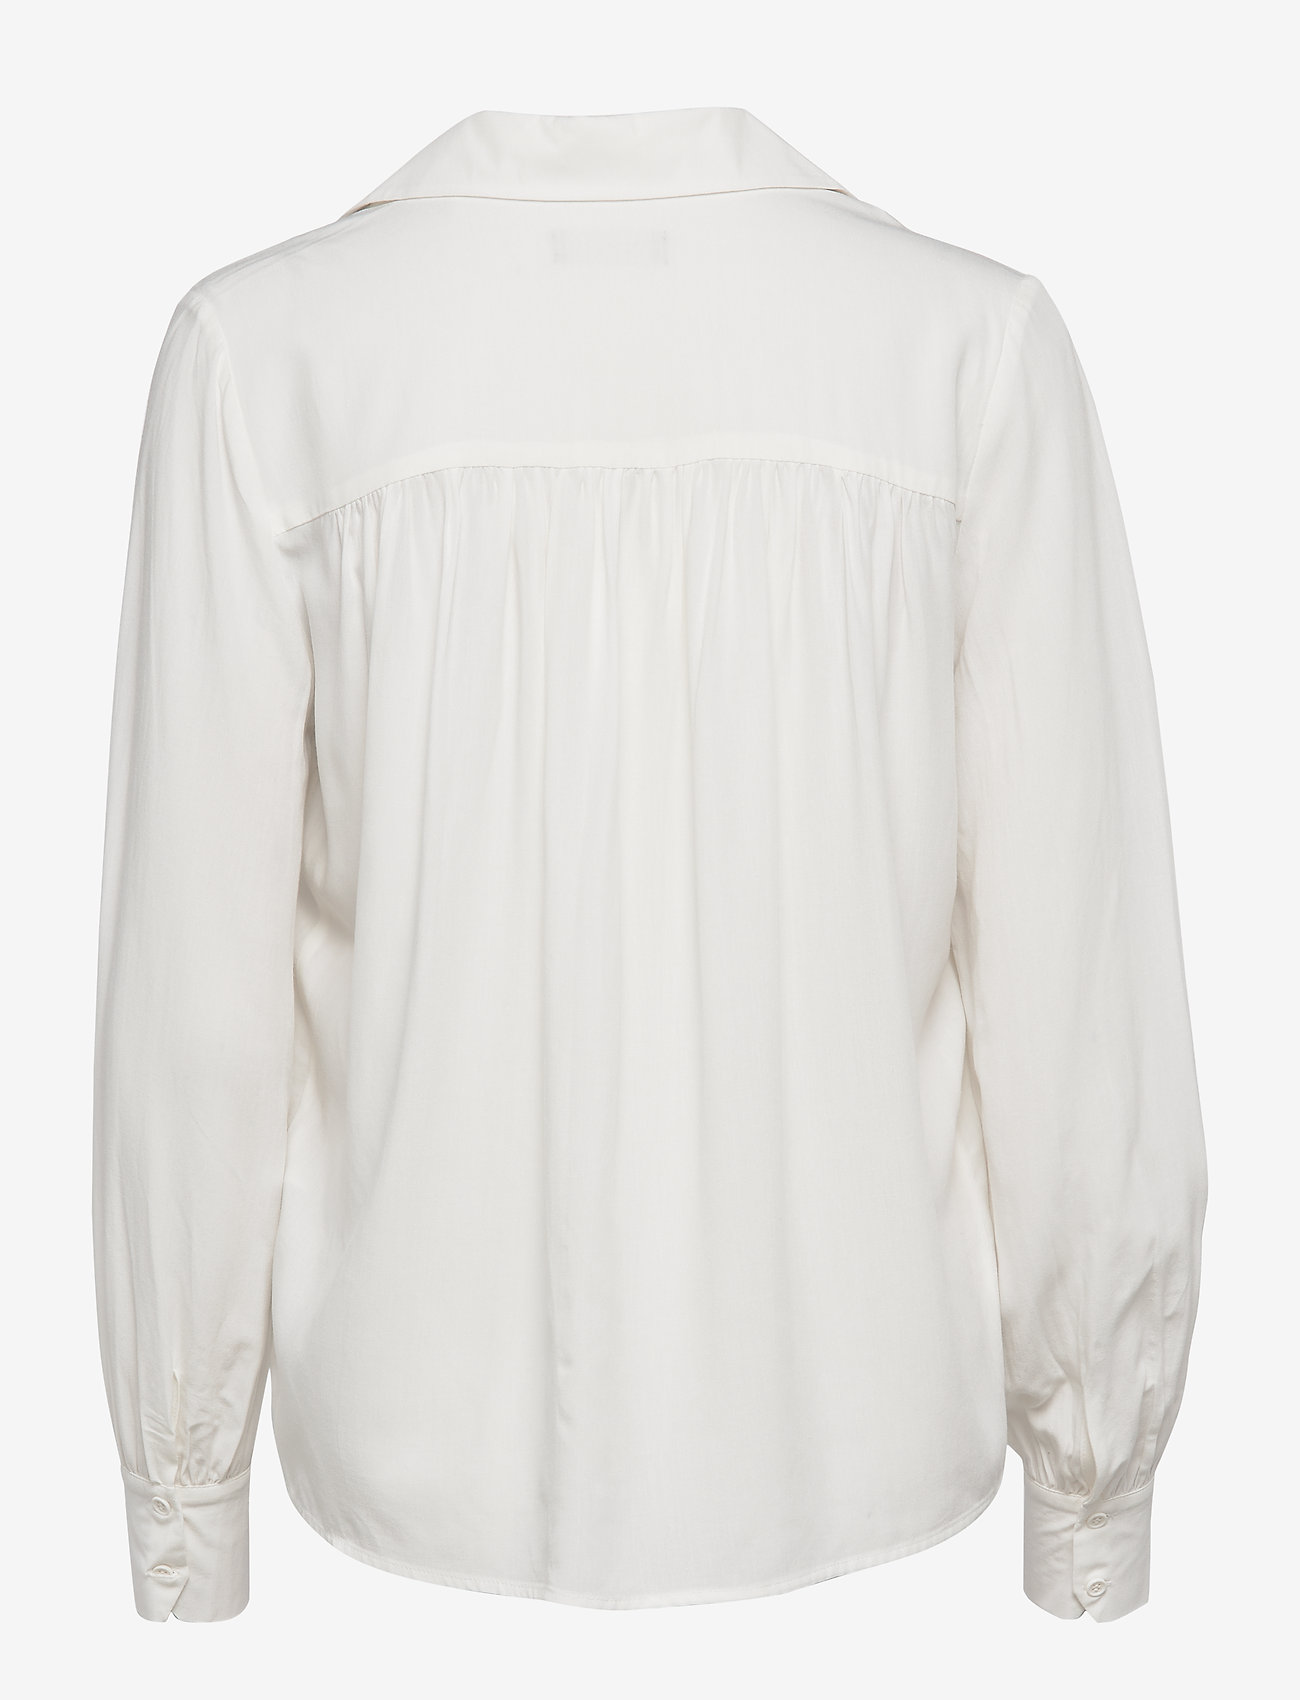 Selected Femme - SLFDAISY LS TOP NOOS - long sleeved blouses - creme - 1